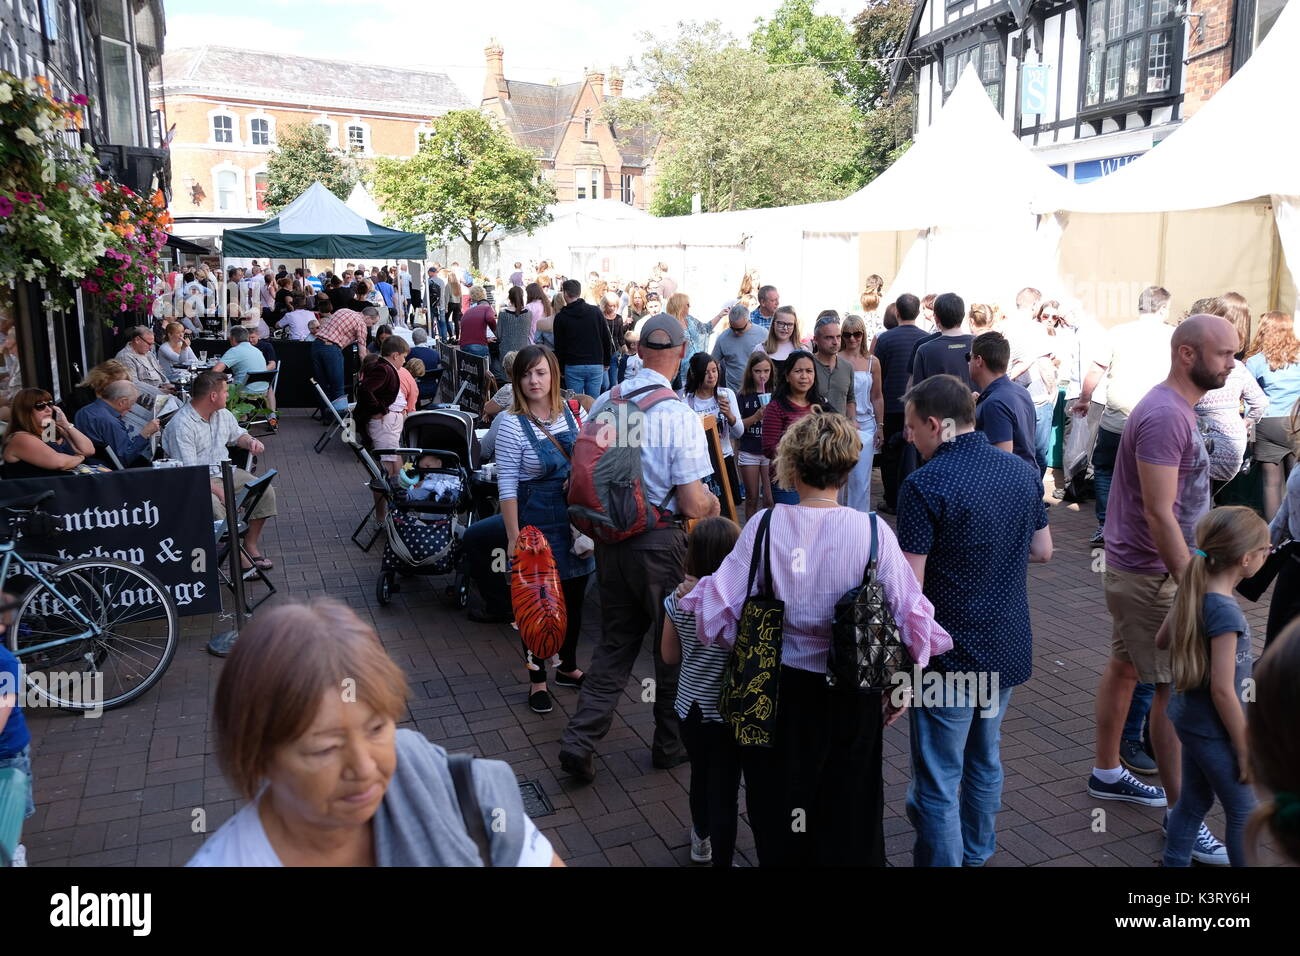 Nantwich Food Festival, Cheshire - Stock Image